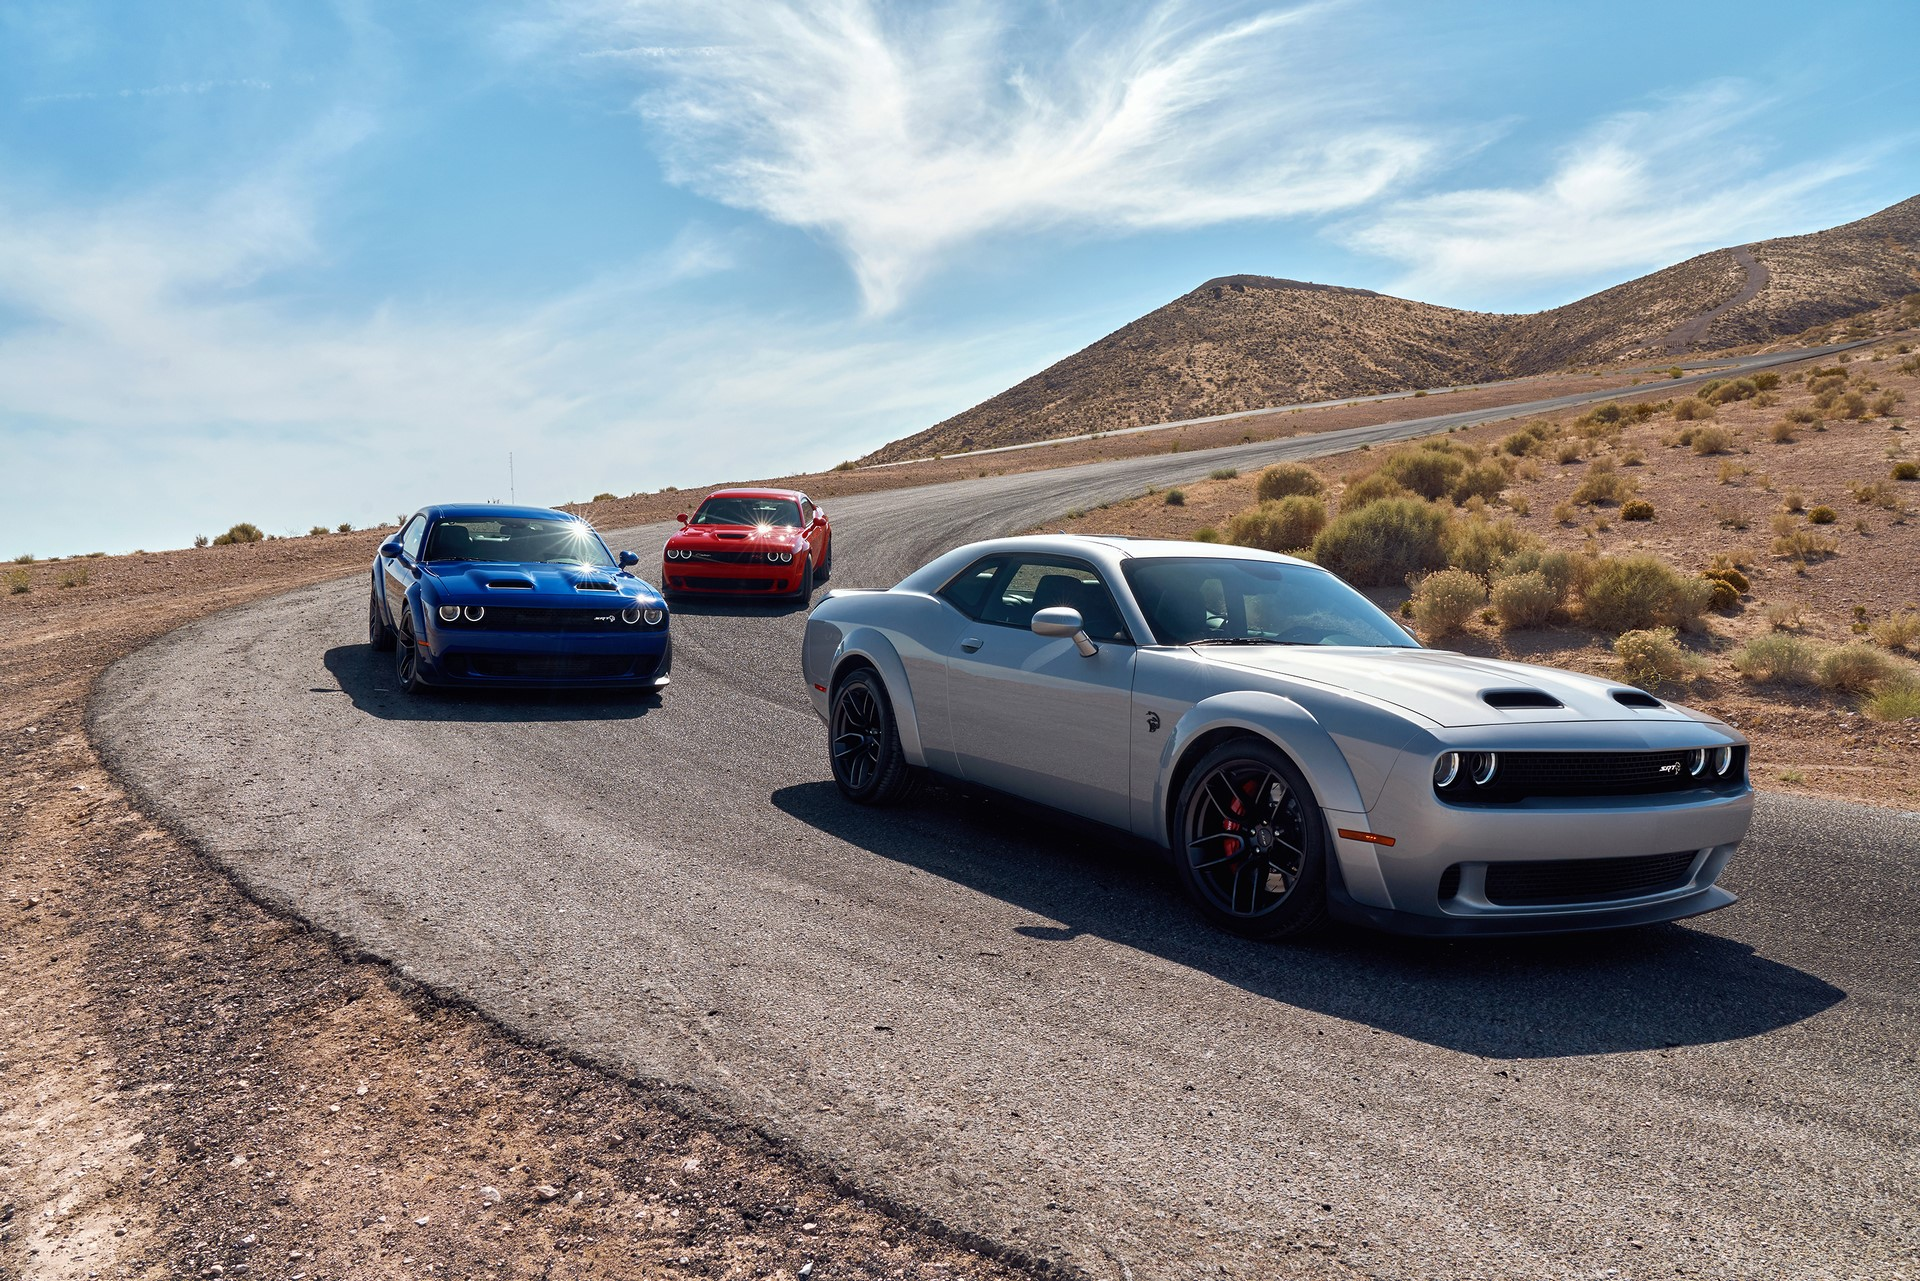 2019 Dodge Challenger Lineup: SRT Hellcat Redeye Widebody, SRT Hellcat Widebody, R/T Scat Pack Widebody (from front to back)